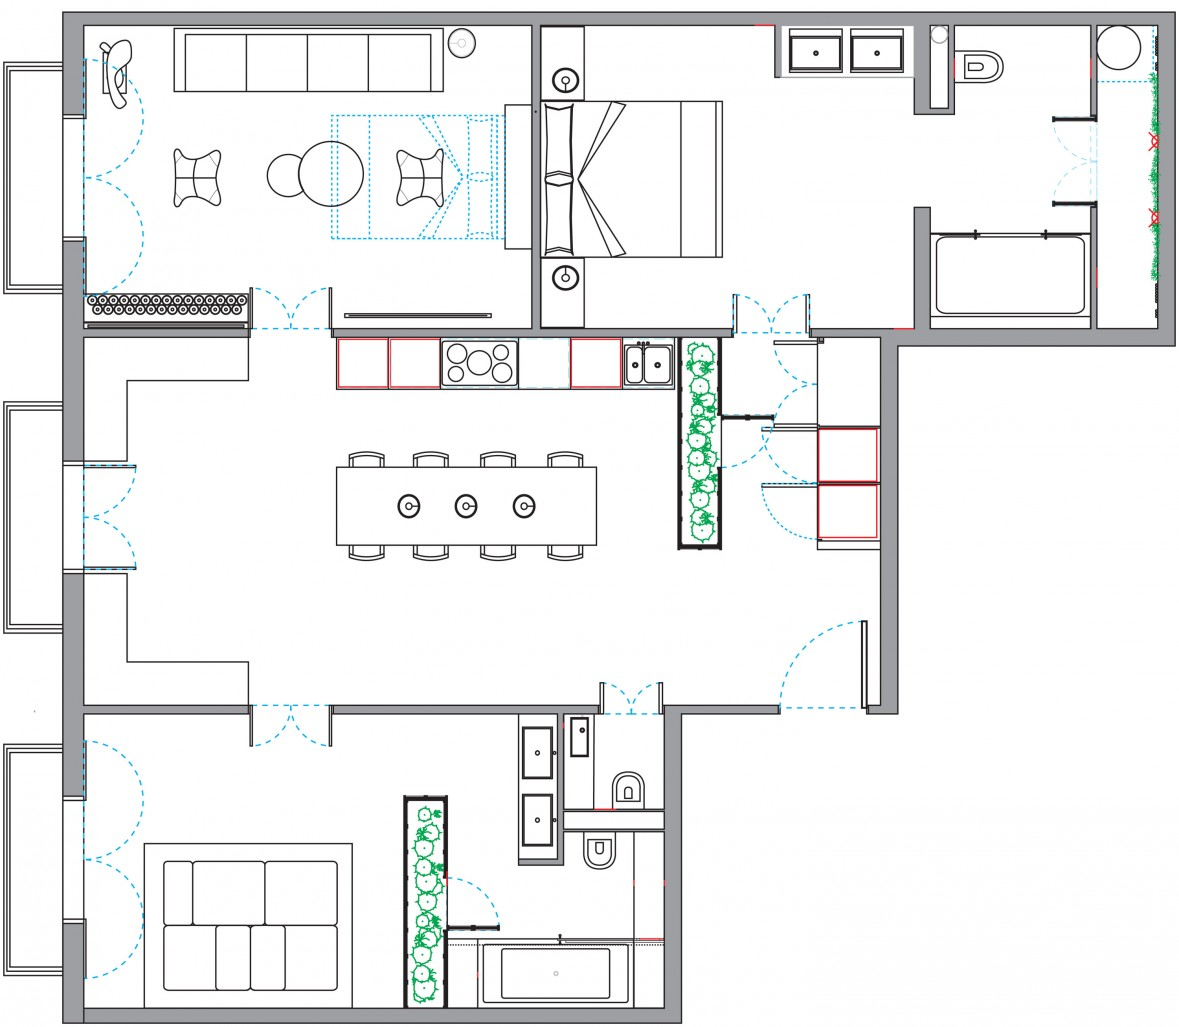 Superb Design Of The Simple Floor Plans With Bedroom Added With Living Room And Dining Room Ideas With Backyard